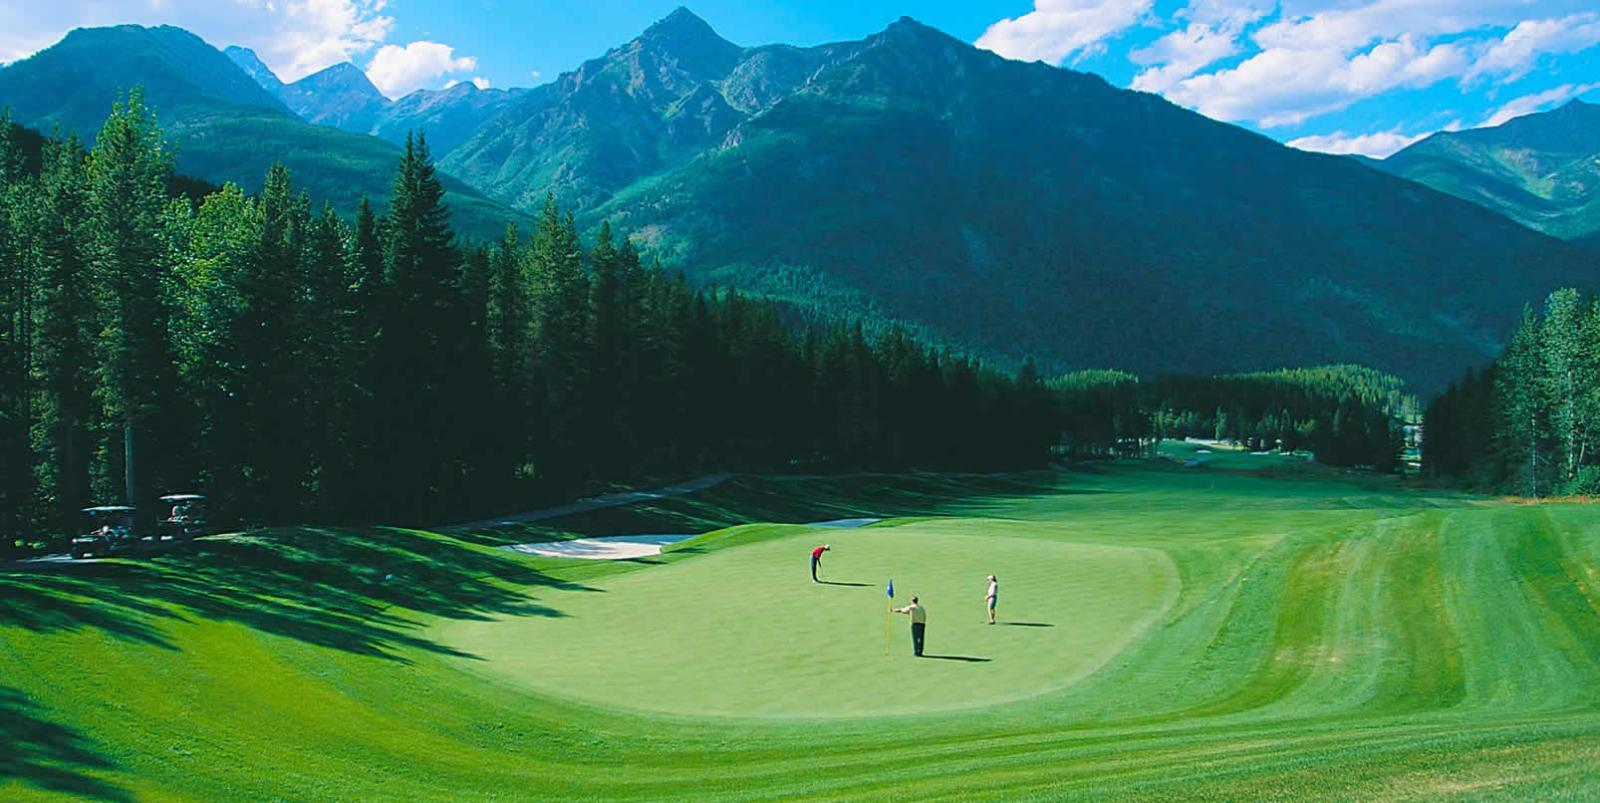 Golf Course and Mountains